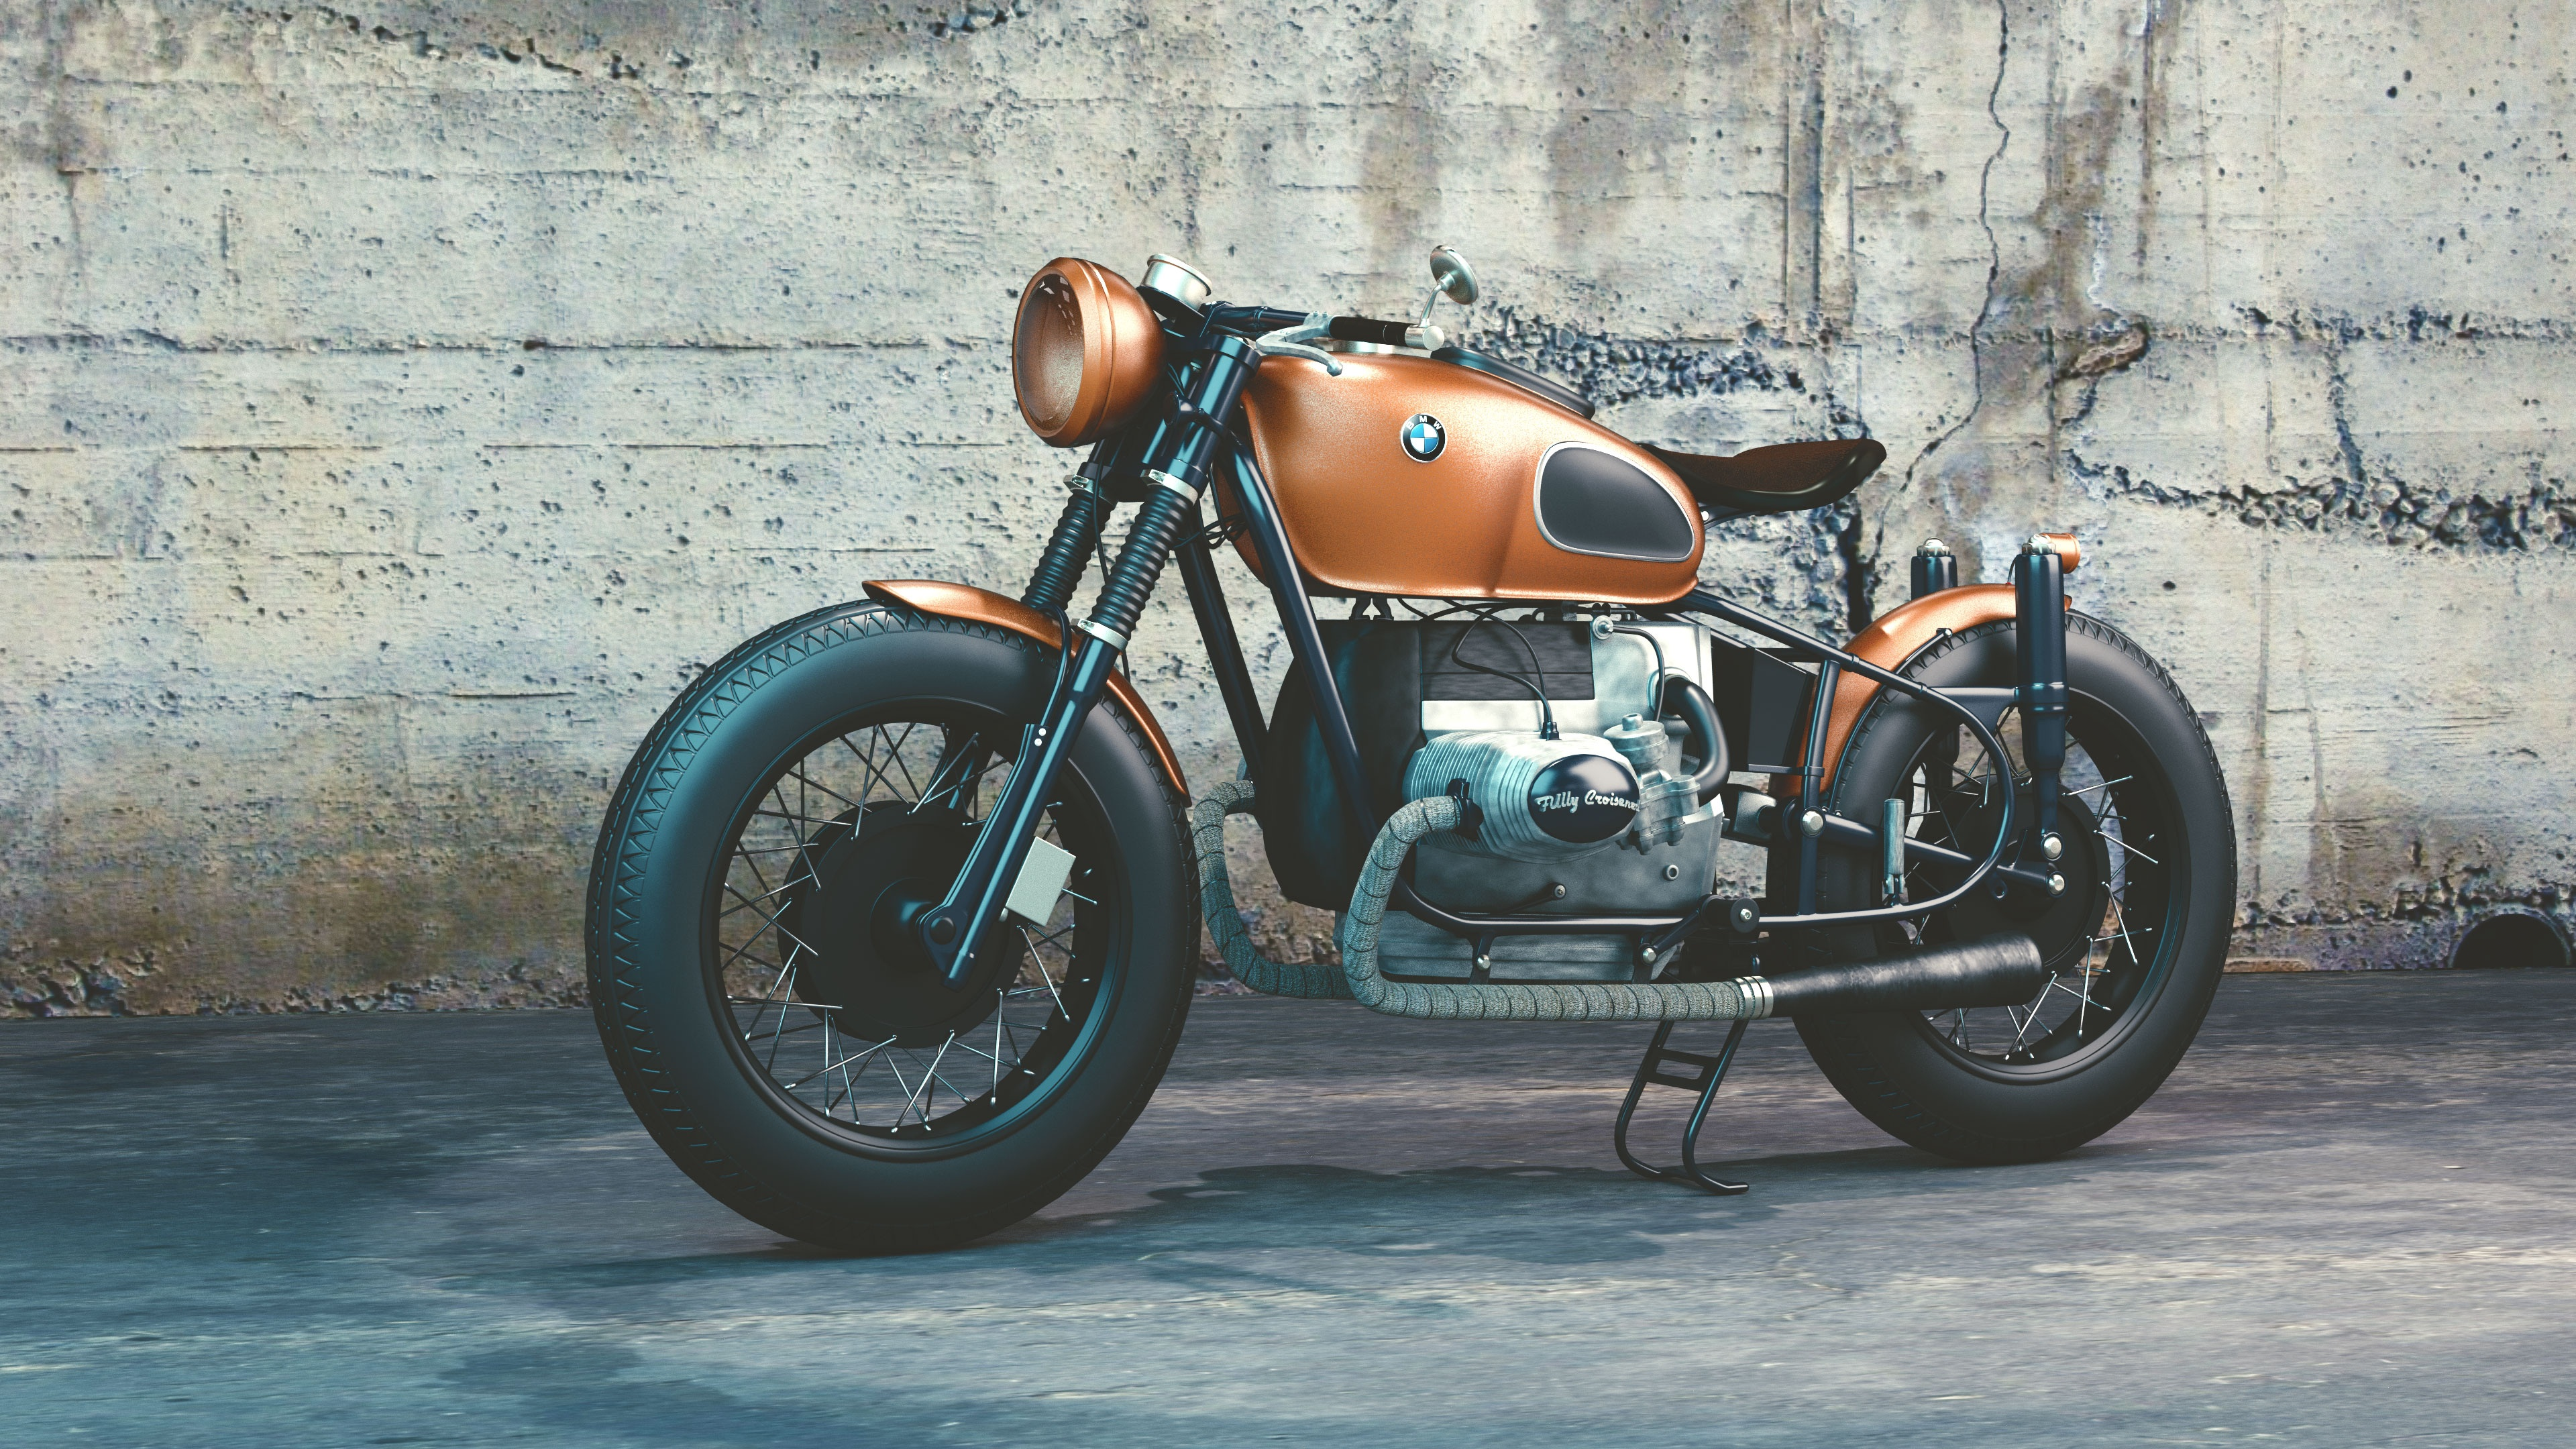 orange and black bmw motorcycle before concrete wall · free stock